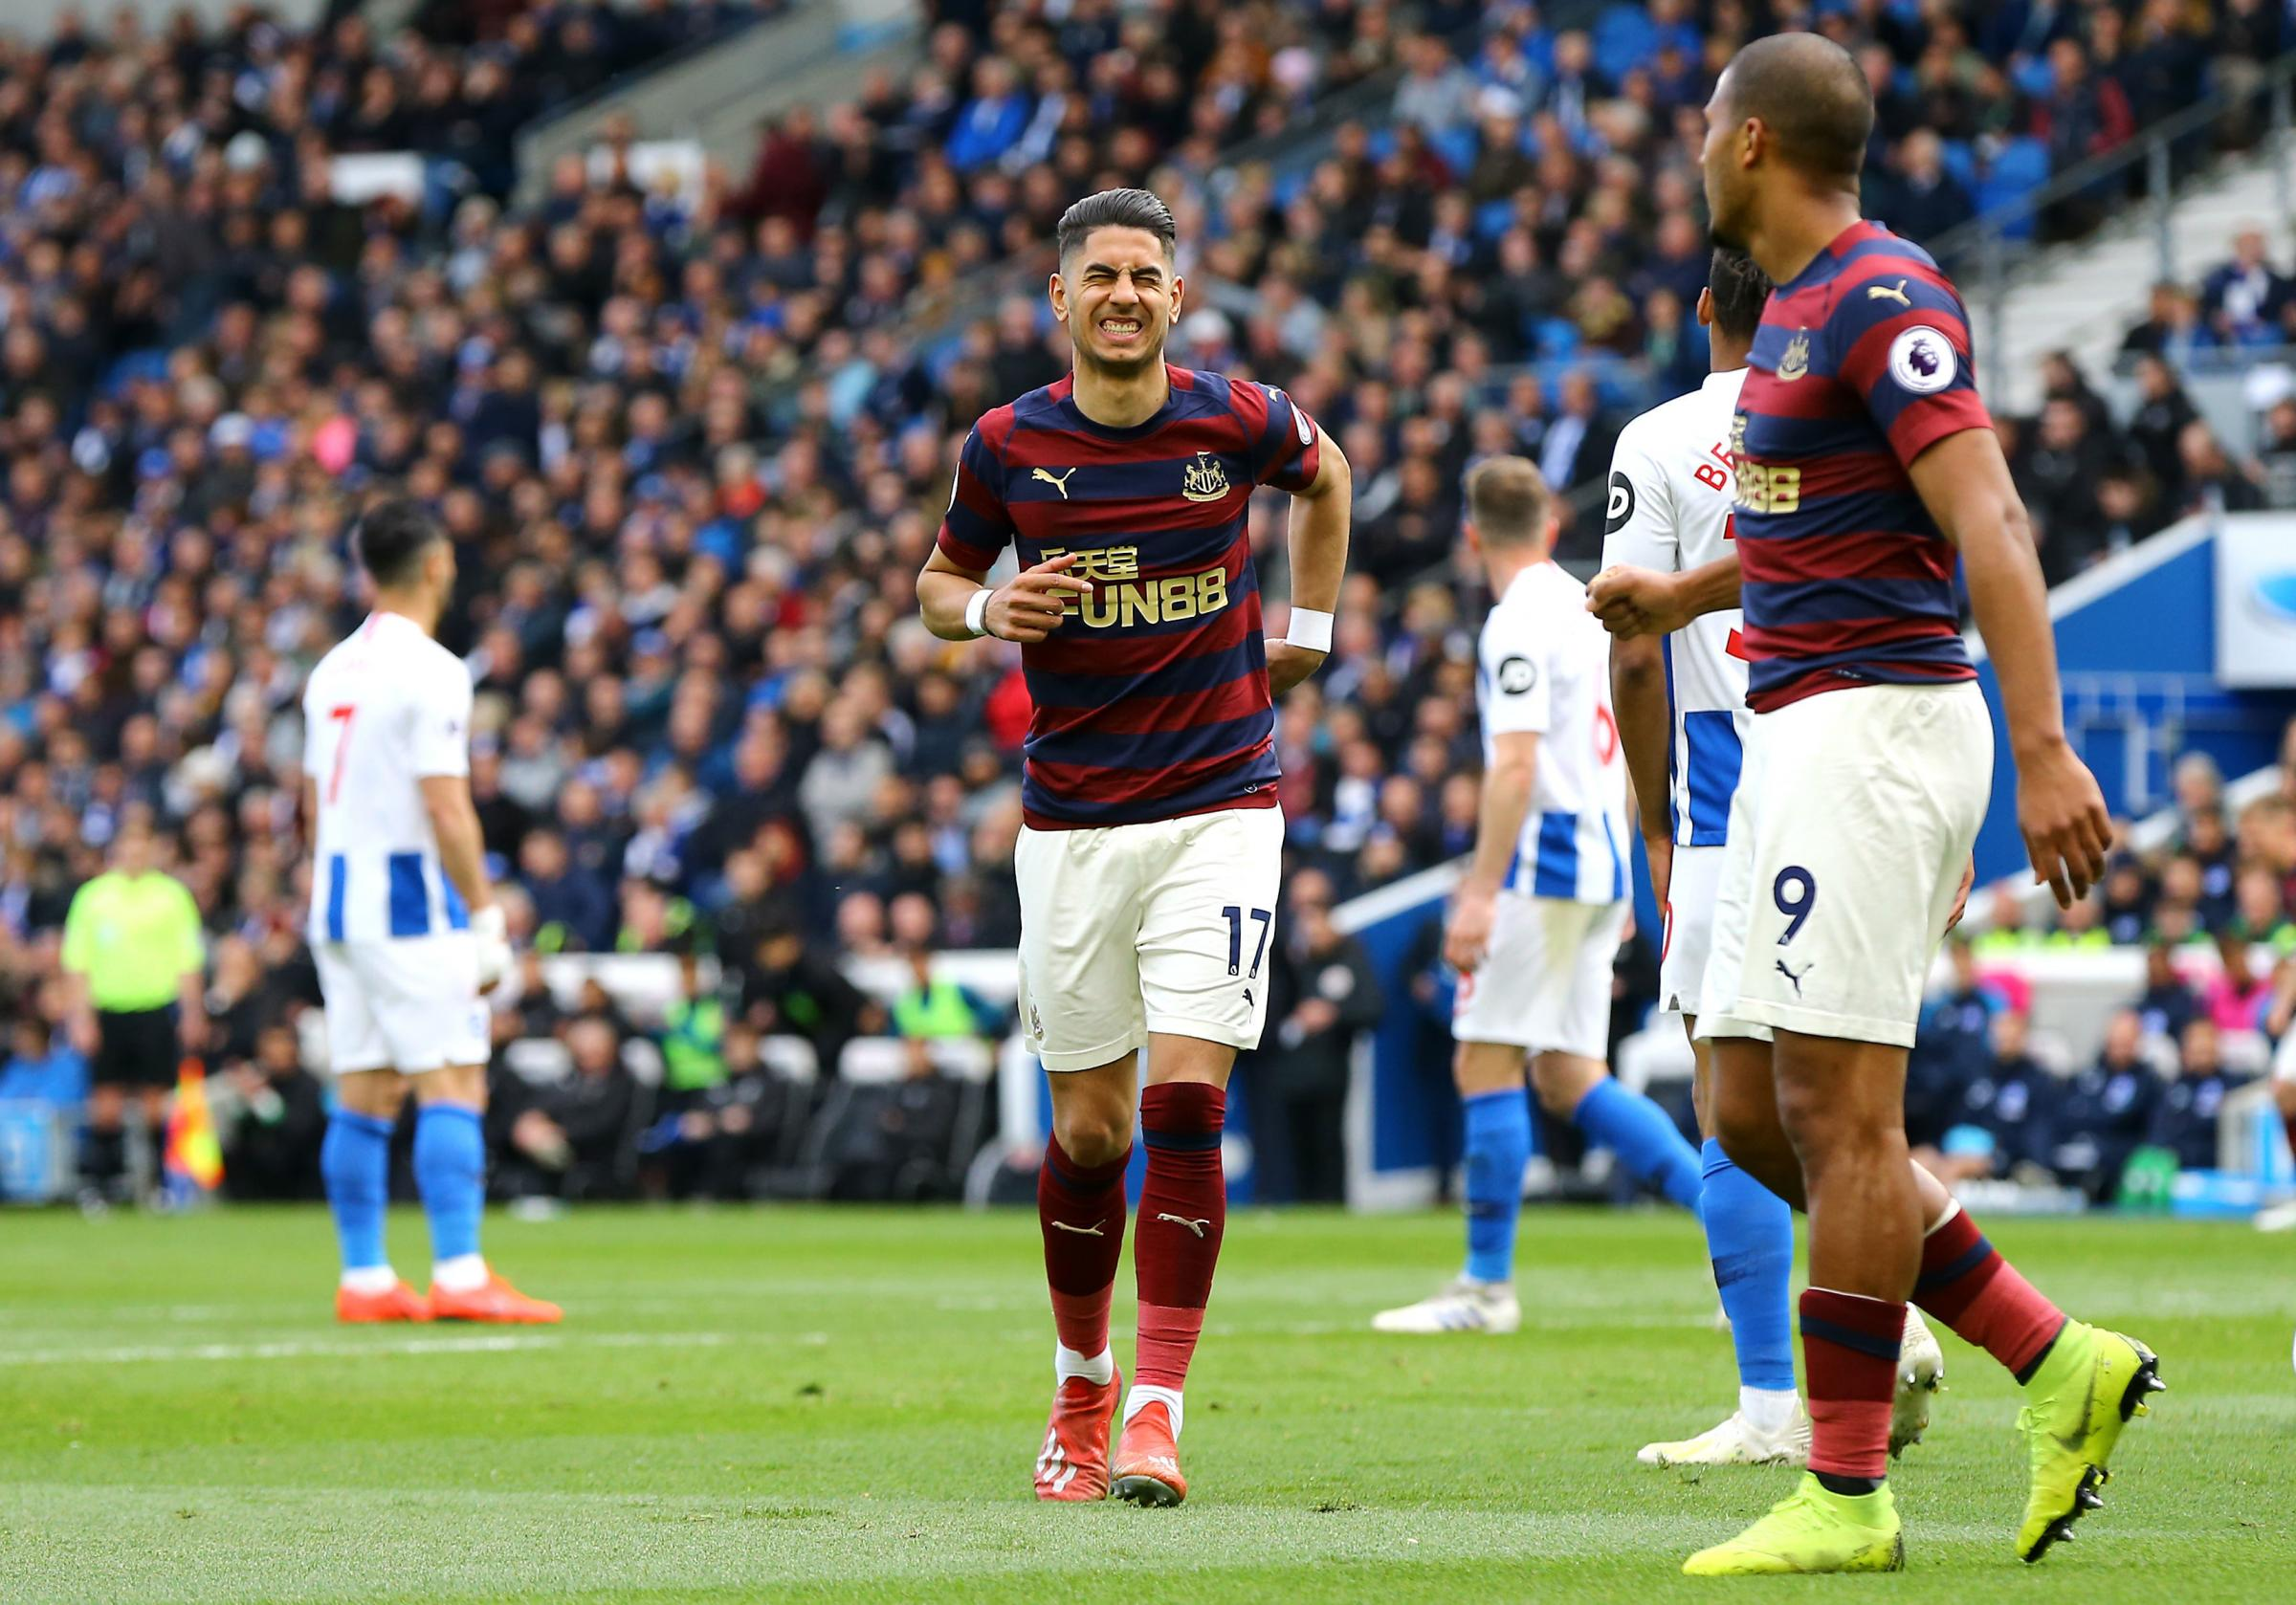 Newcastle United's Ayoze Perez celebrates scoring his side's first goal of the game with team-mates during the Premier League match at the AMEX Stadium, Brighton. PRESS ASSOCIATION Photo. Picture date: Saturday April 27, 2019. See PA story SOCCER